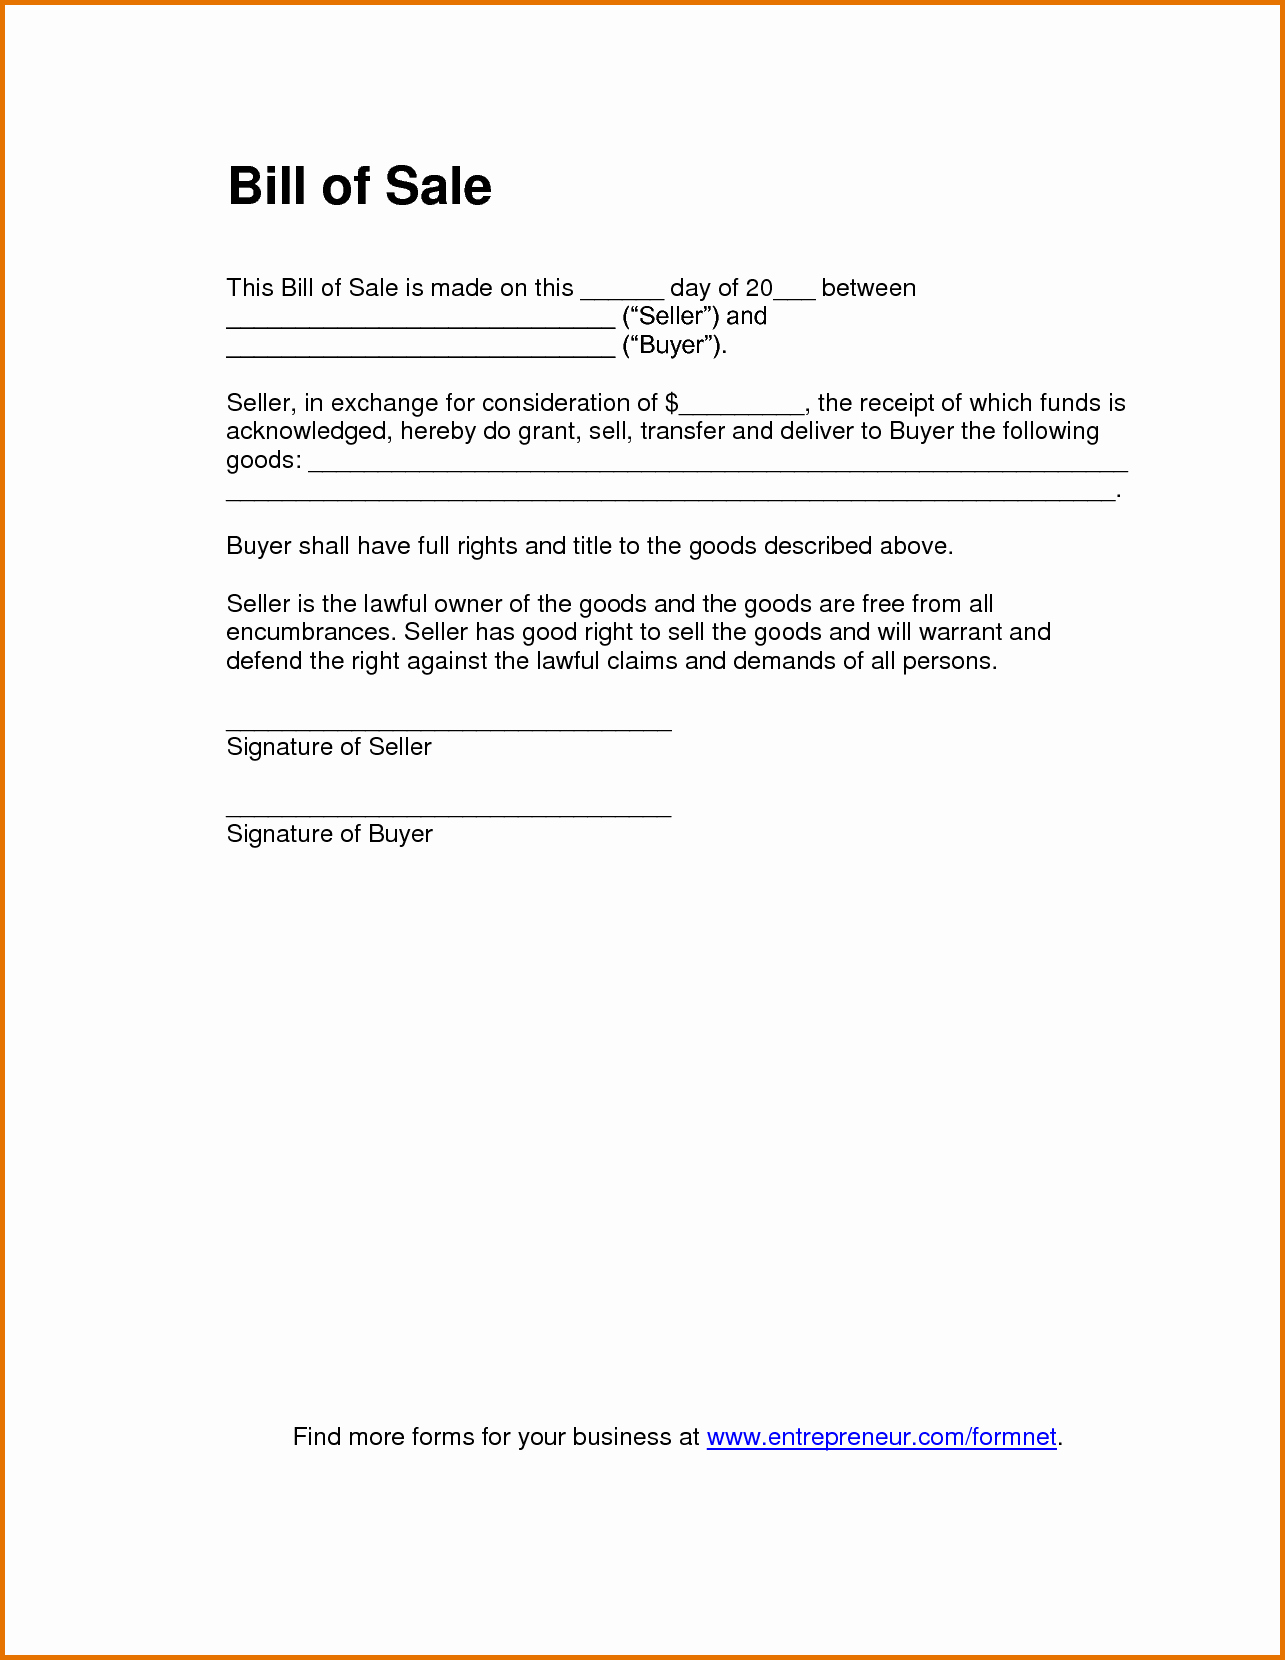 Bill Of Sale Sample Pdf Luxury 8 Bill Of Sale Template Pdfreference Letters Words